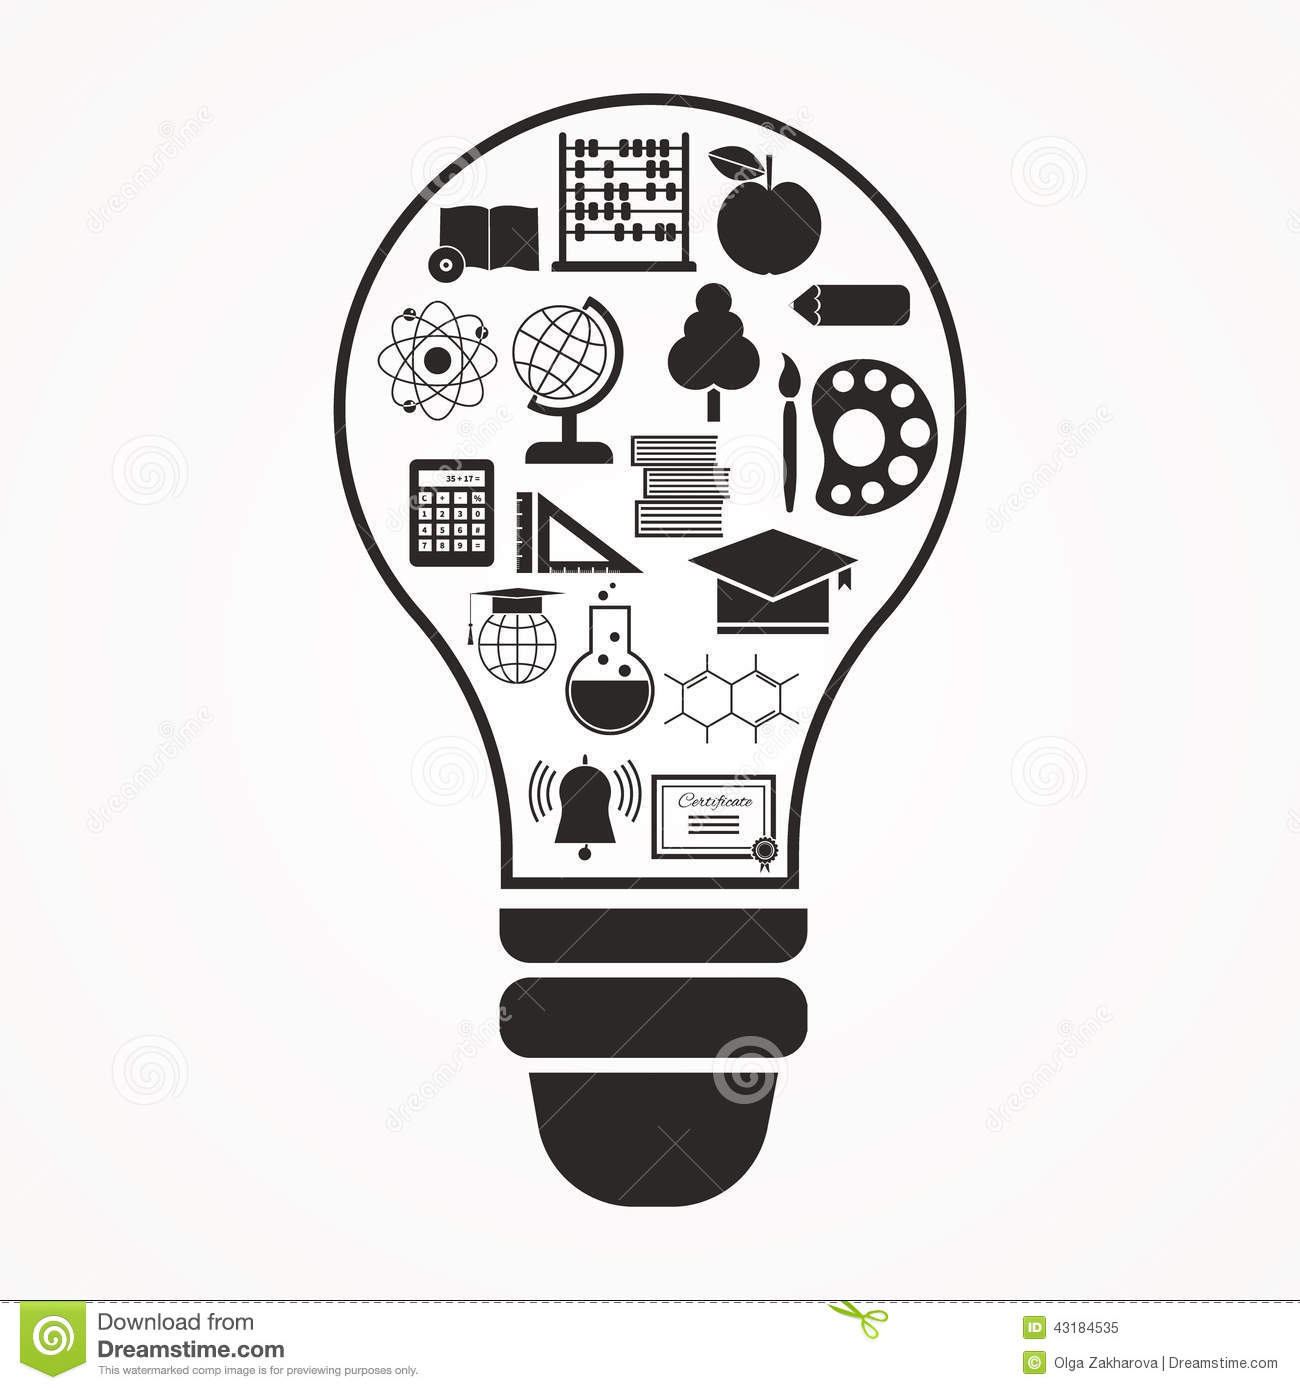 Education Concept stock illustration. Image of icon